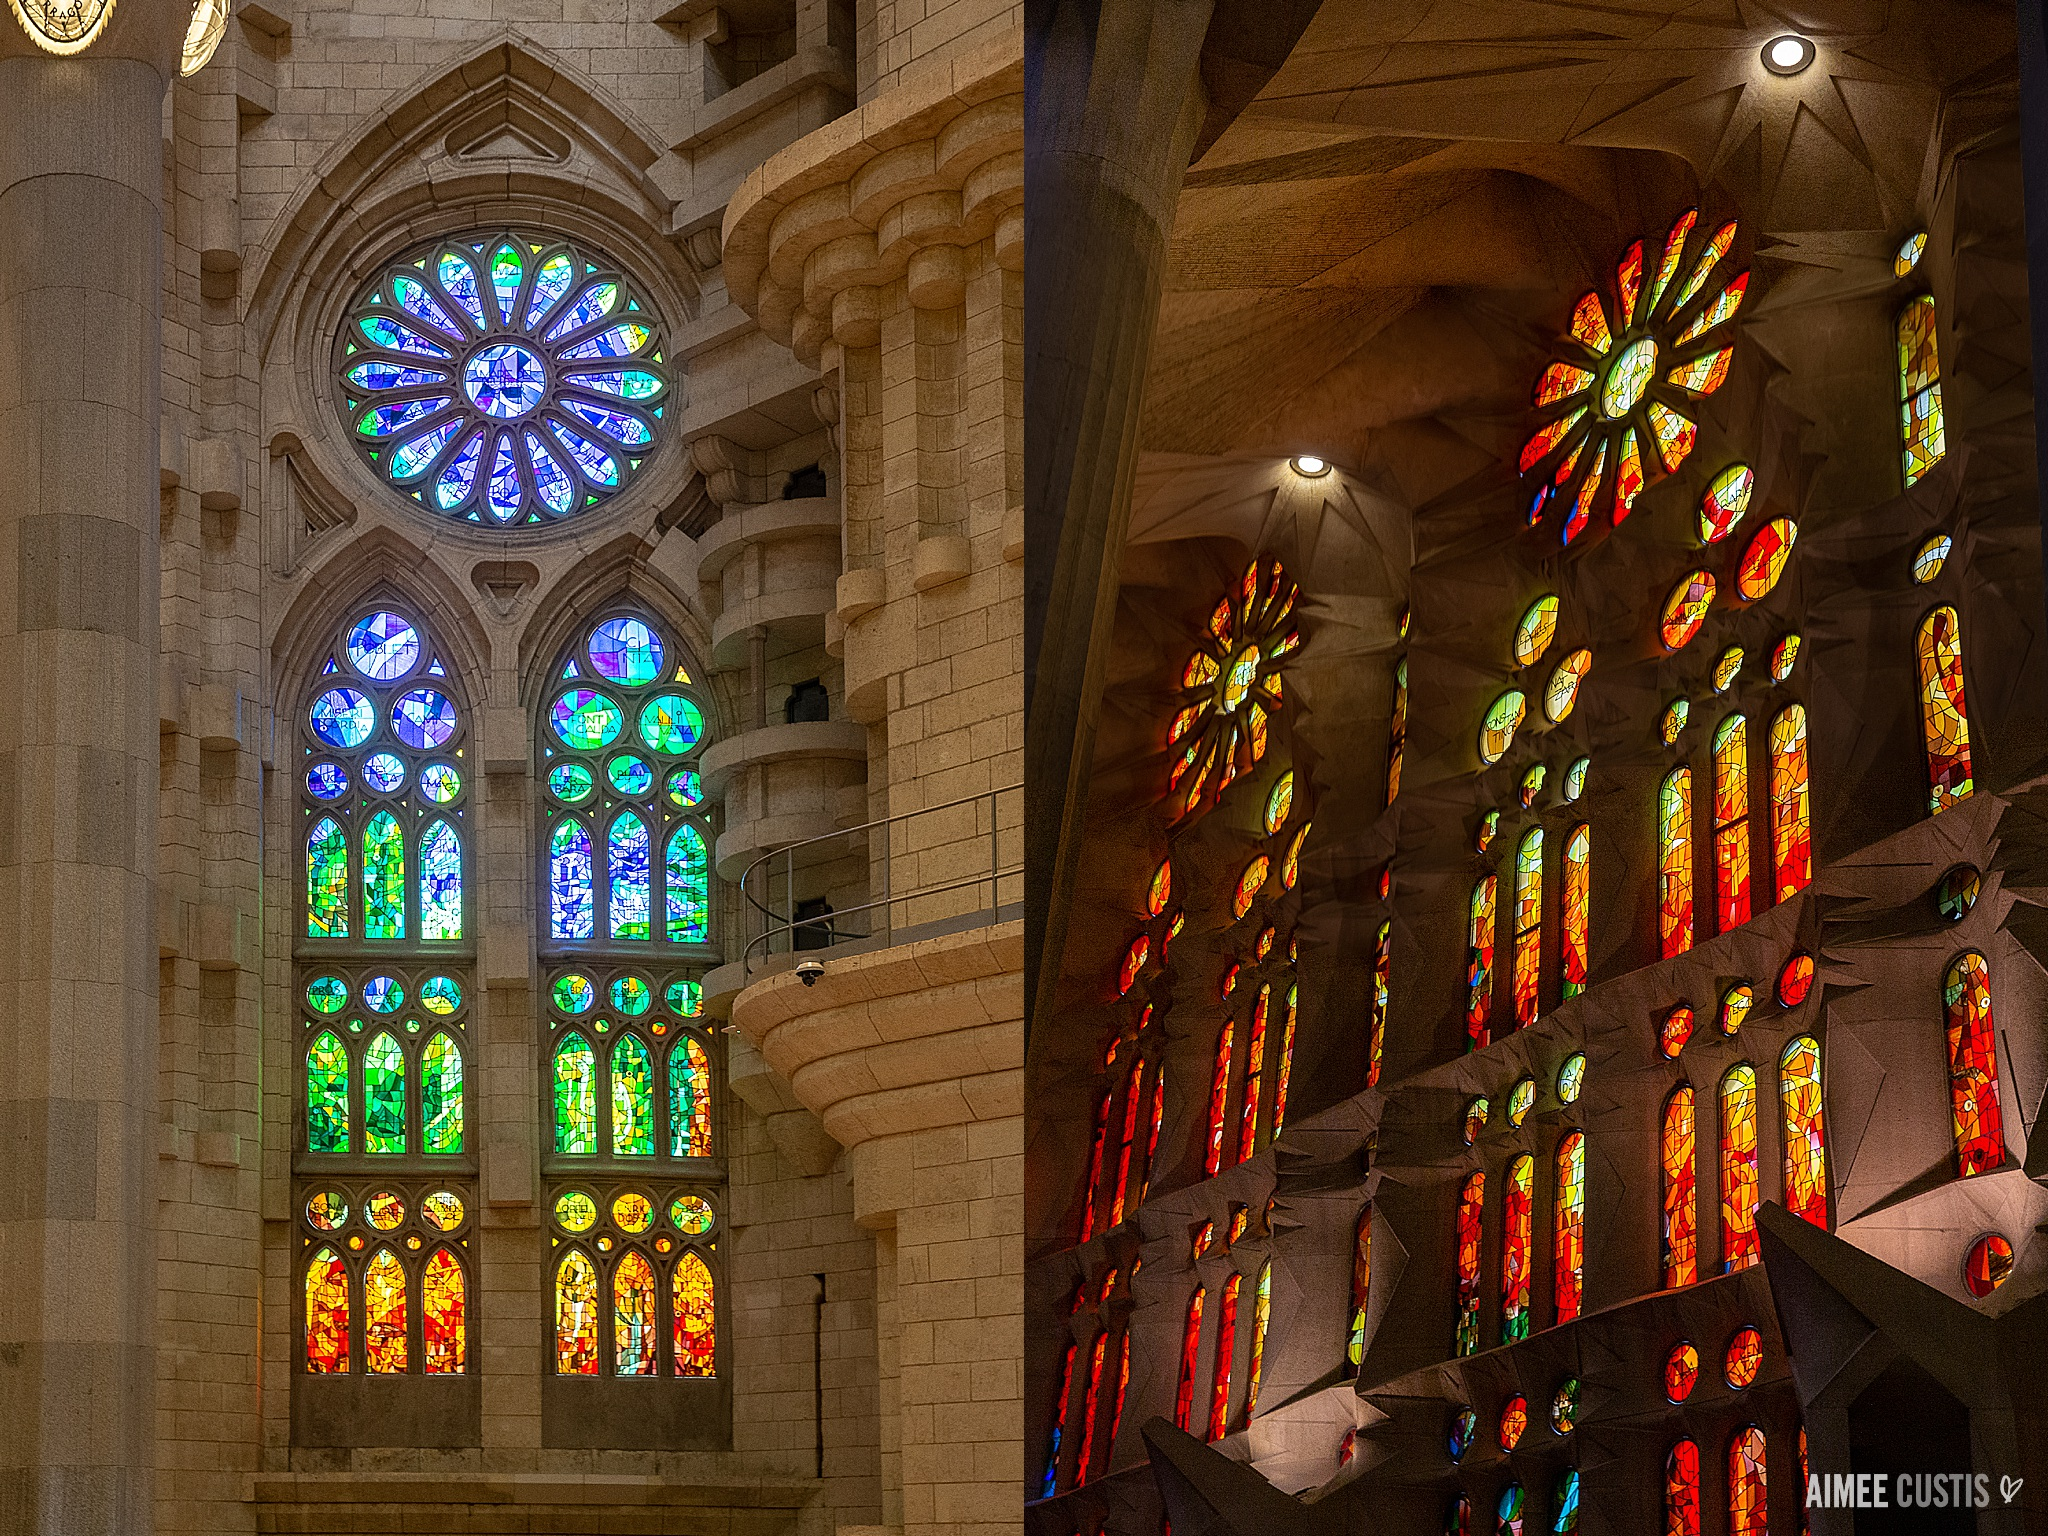 Most of the stained glass windows in the Sagrada Familia were only installed 20 years ago! On the east side of the building, colors tend to be cooler (to better channel sunrise light) and on the west side, warmer (sunset)!